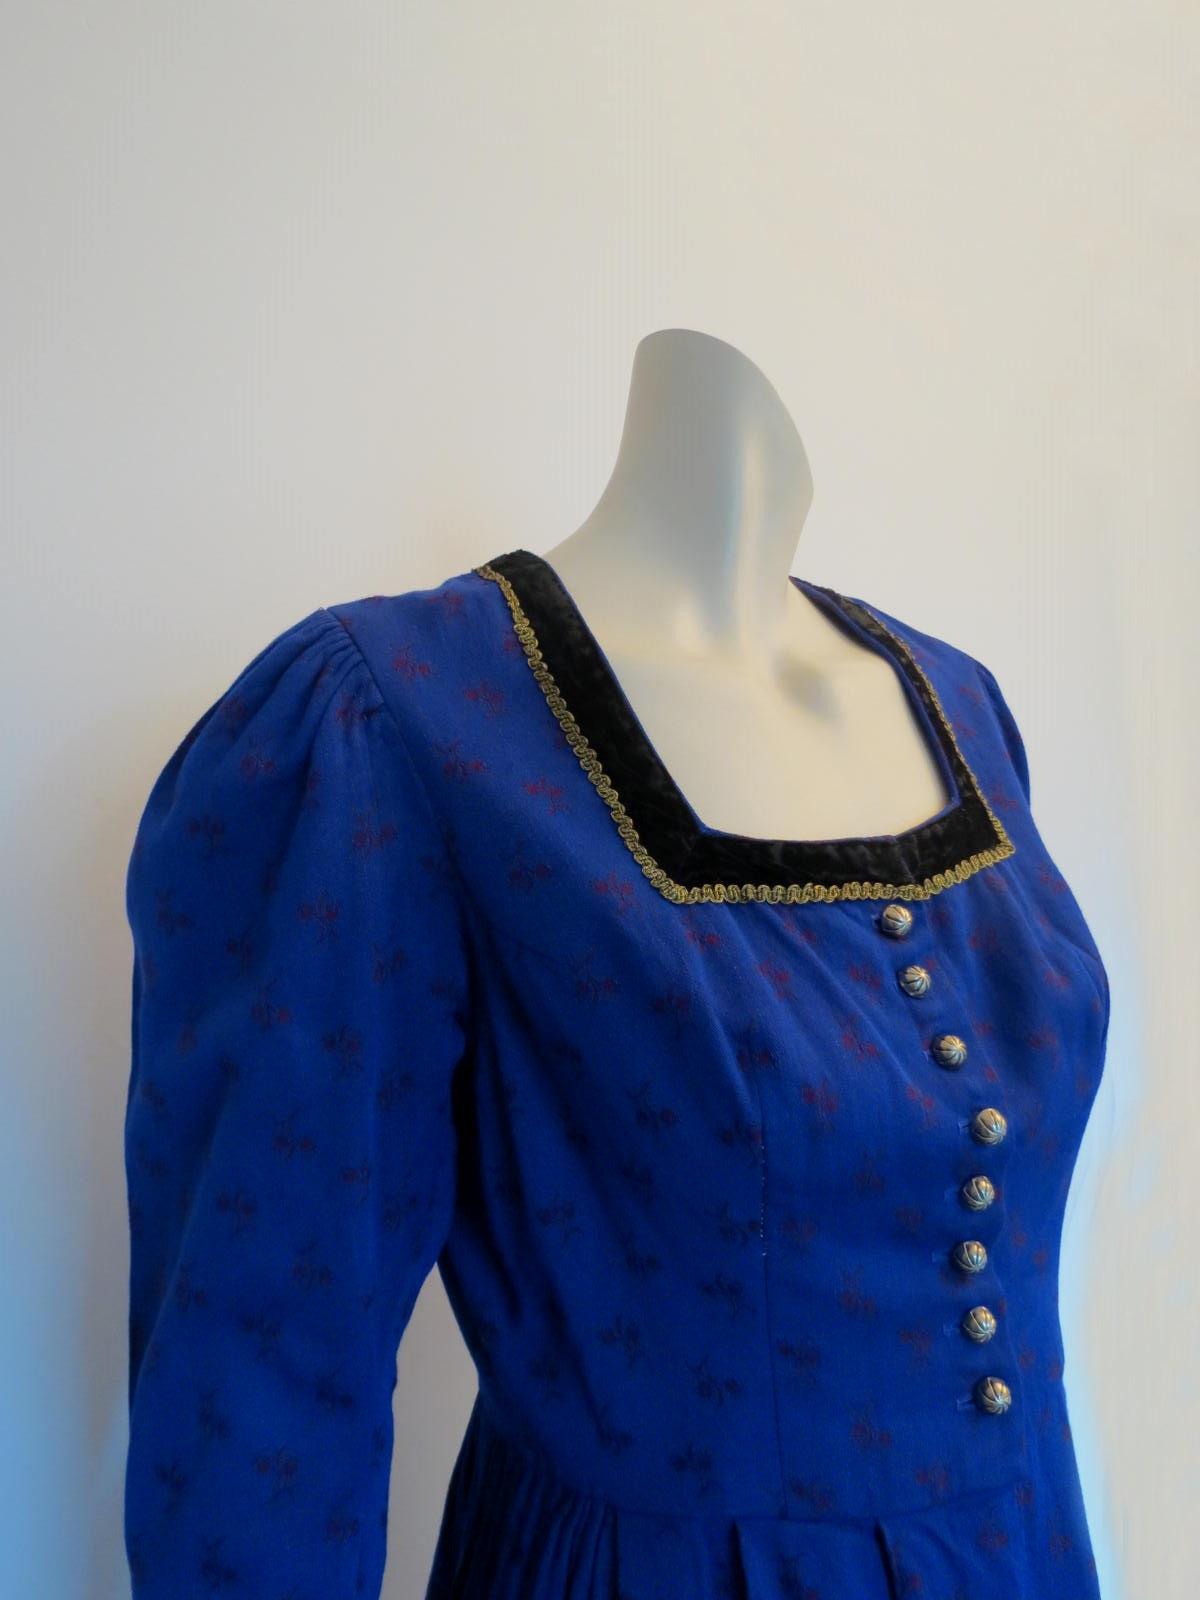 blue winter dirndl vintage austrian folk dress